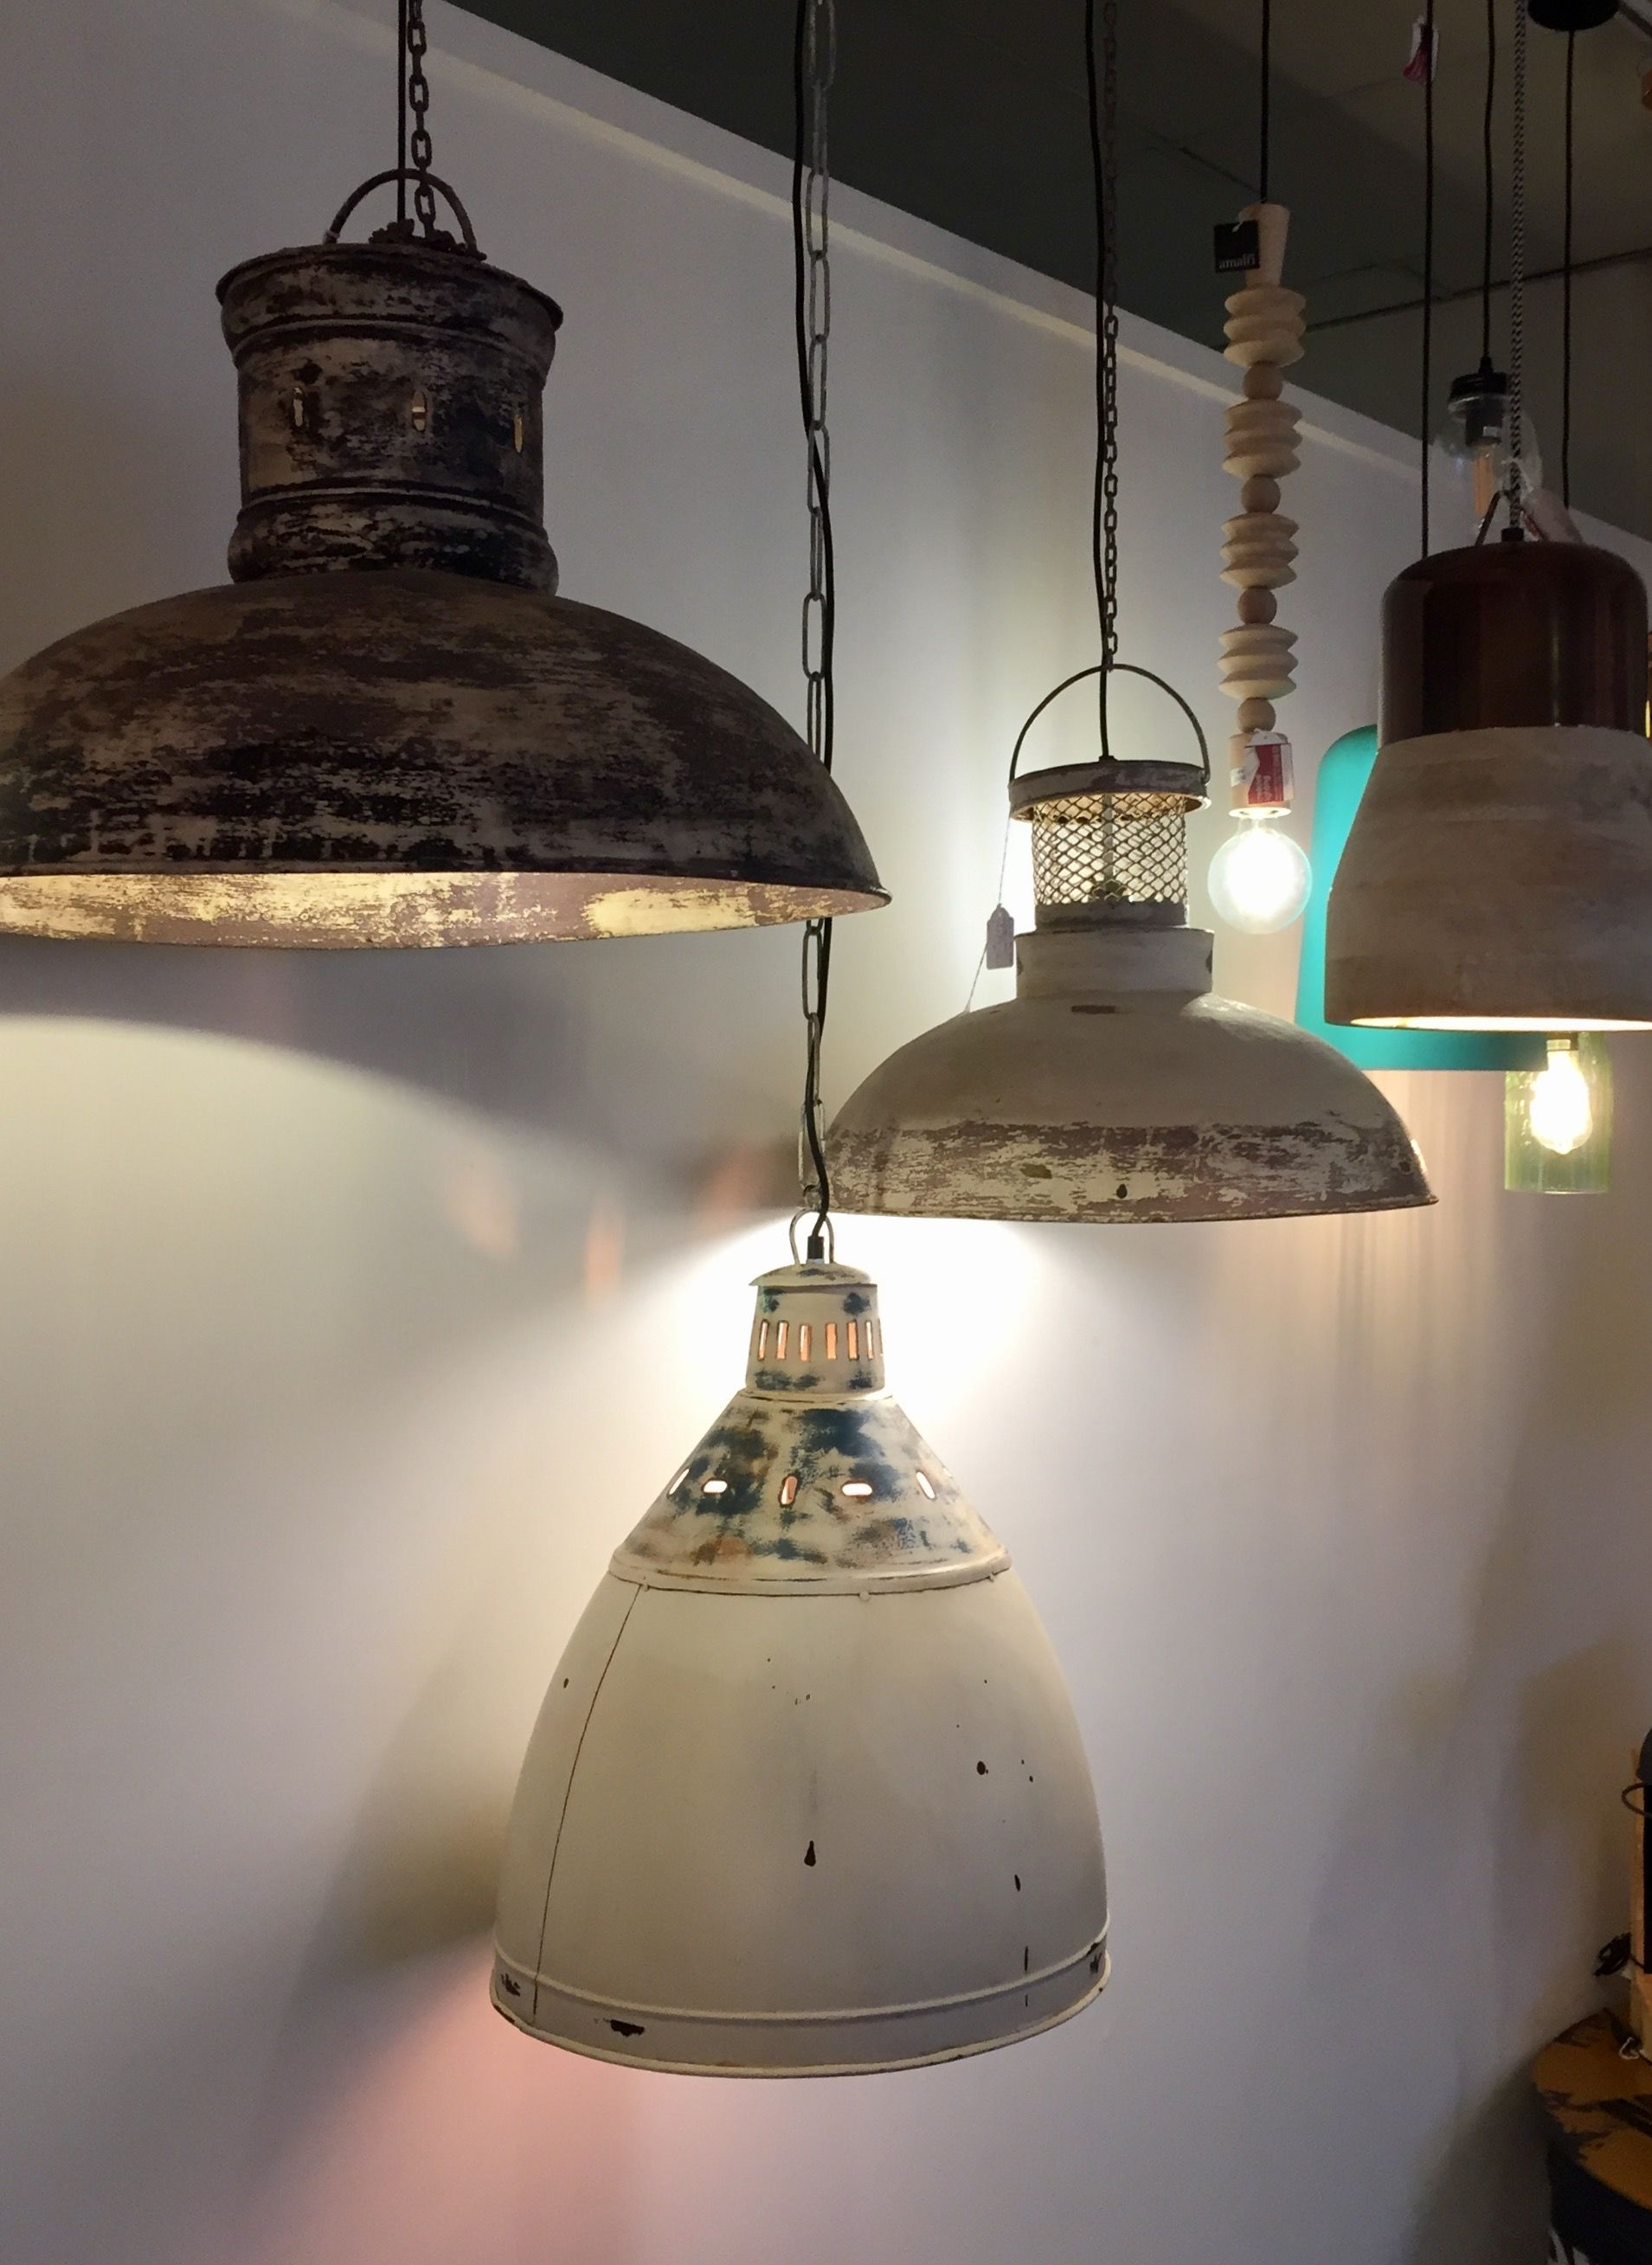 creative lighting concepts led lights find this pin and more on creative lighting concept studio145 whitehorse rd blackburn by creativelightingvic victoria